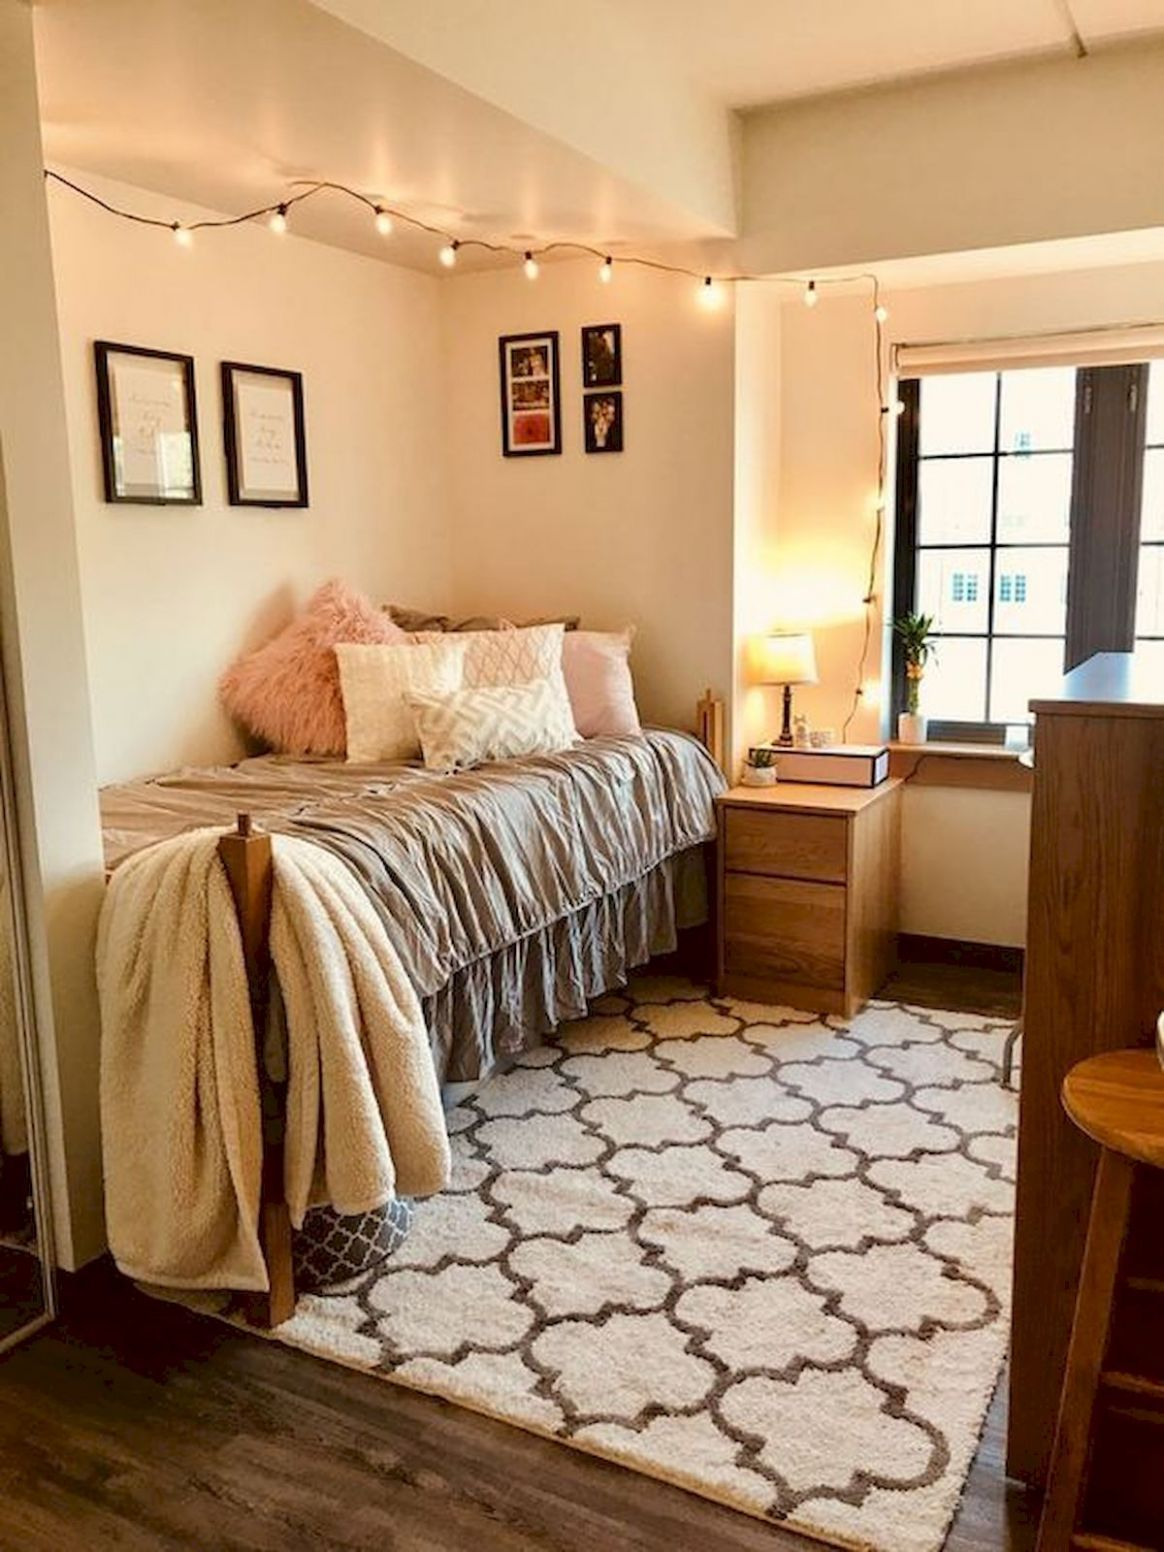 Pin by Kalli Gordanier on For the Home... | Dorm room inspiration ..